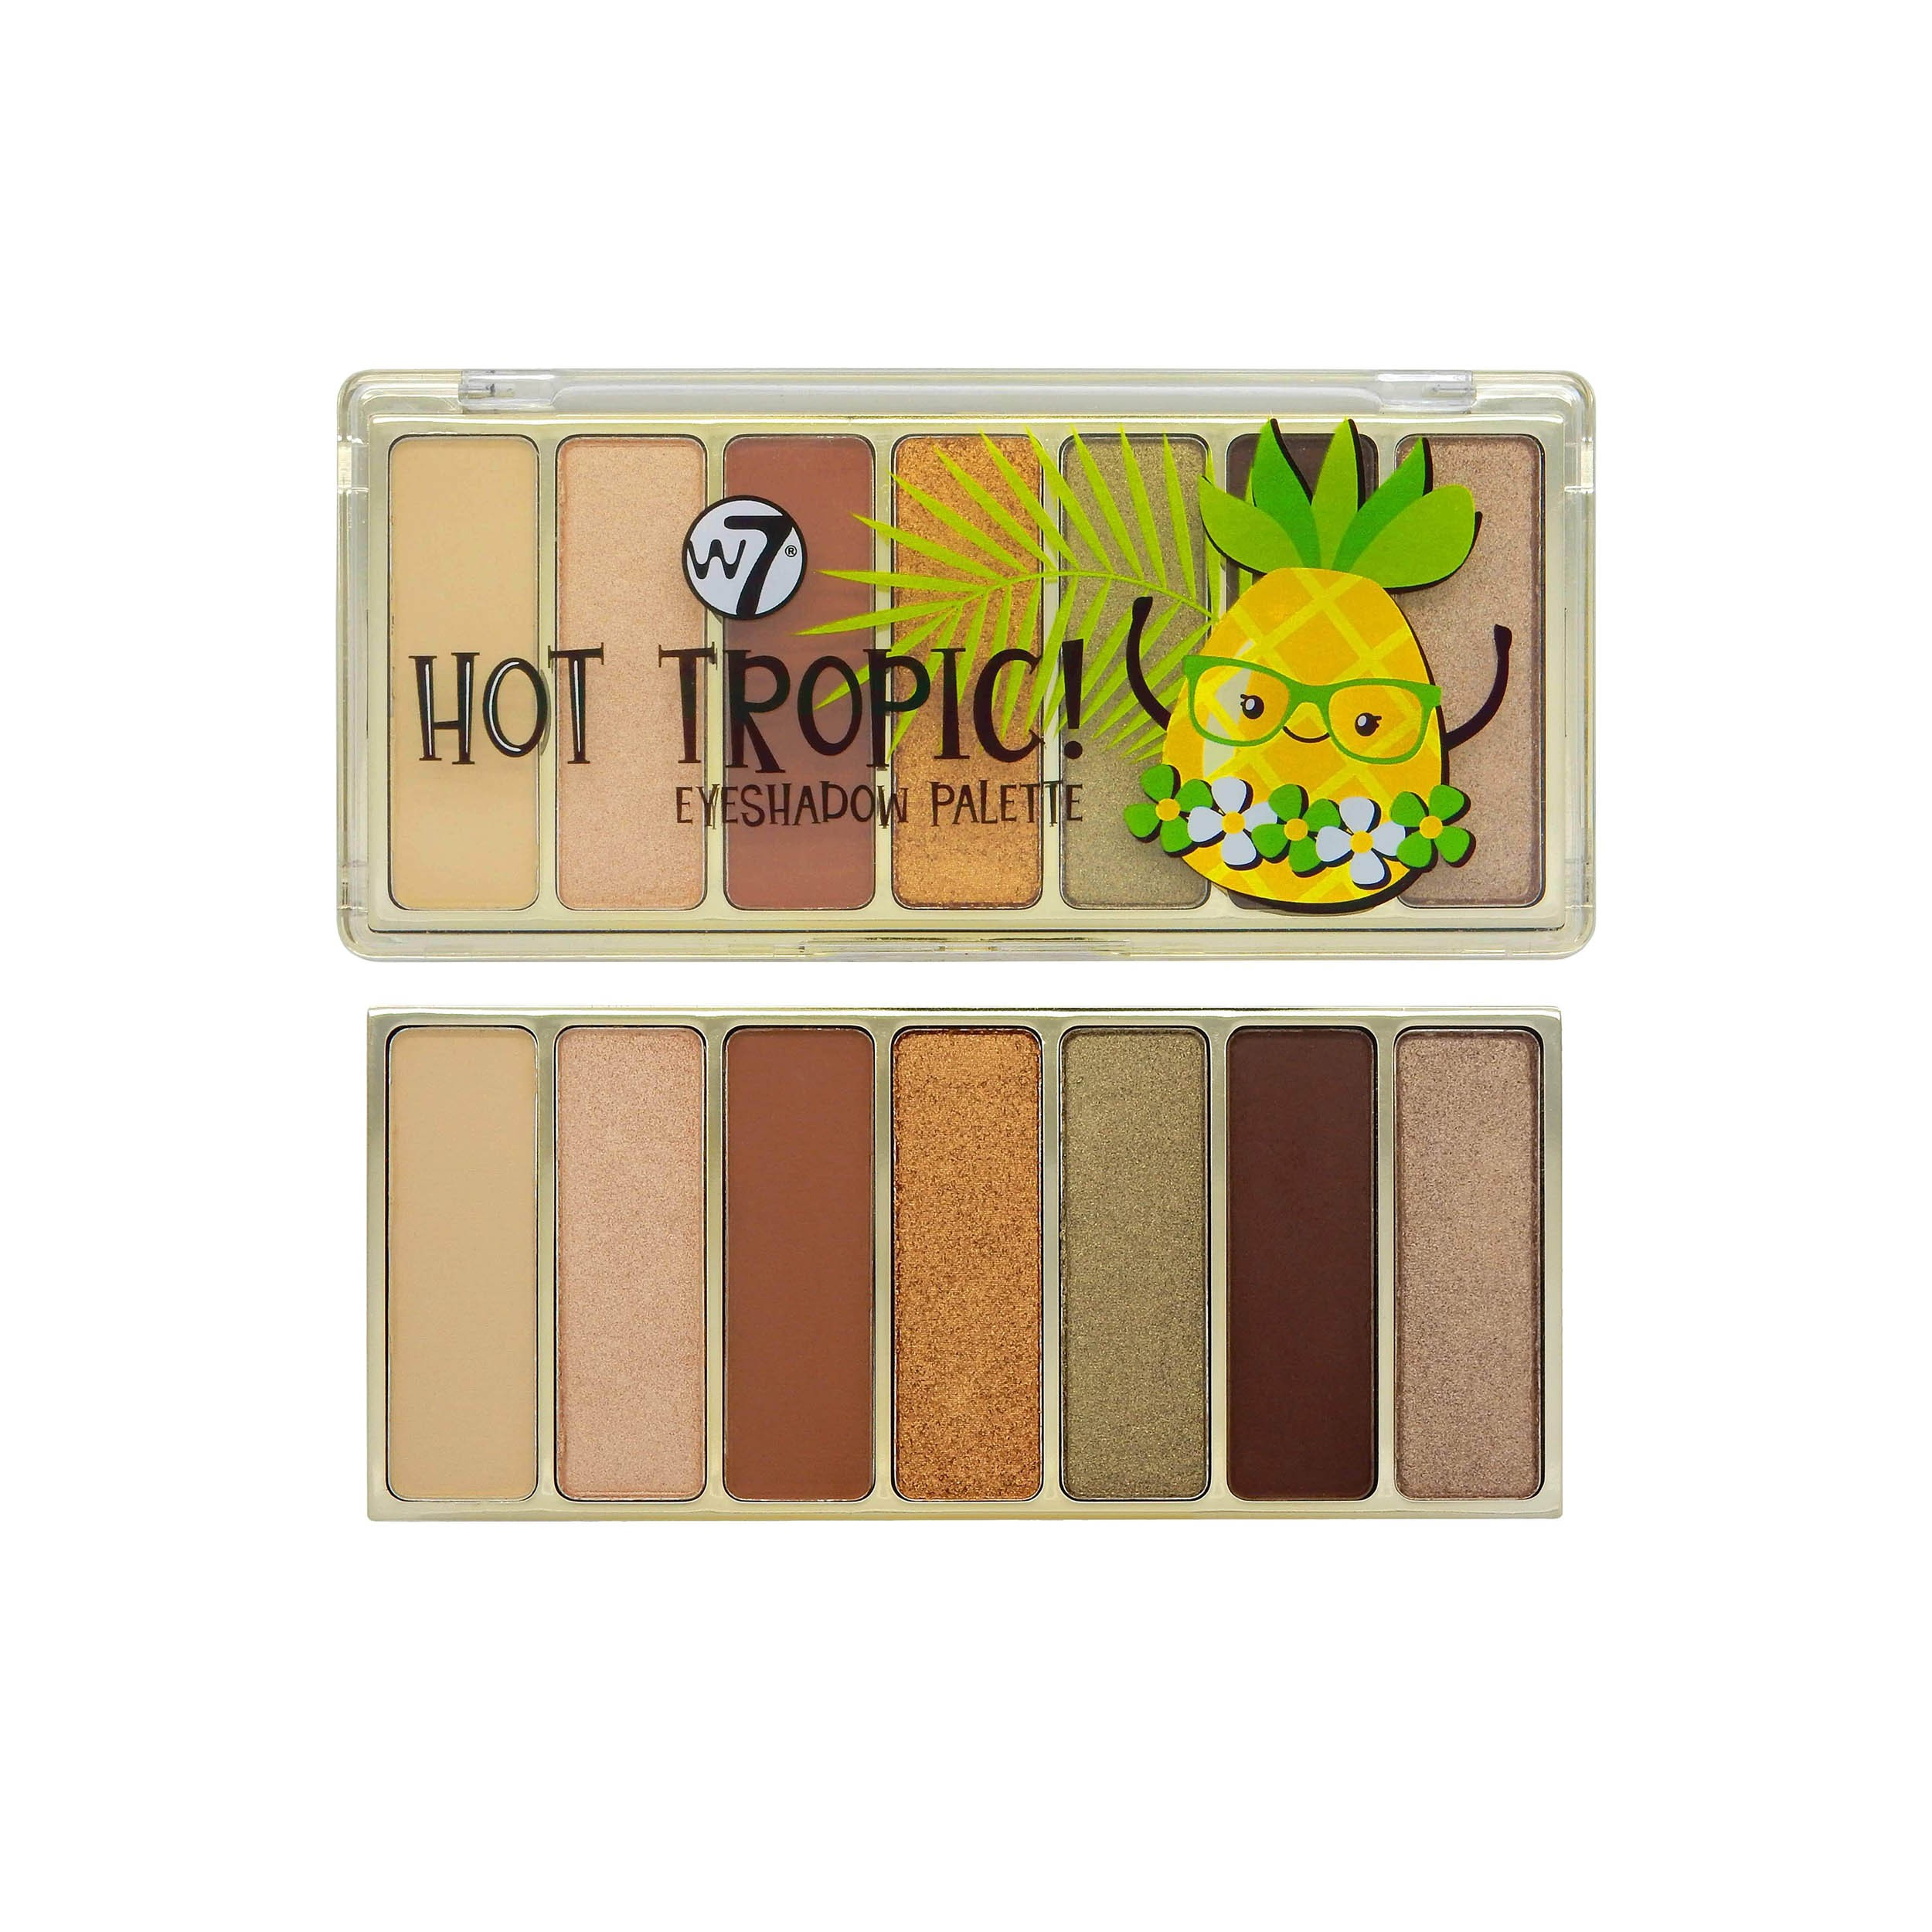 Lidschatten-Palette - Hot Tropic Eyeshadow Palette